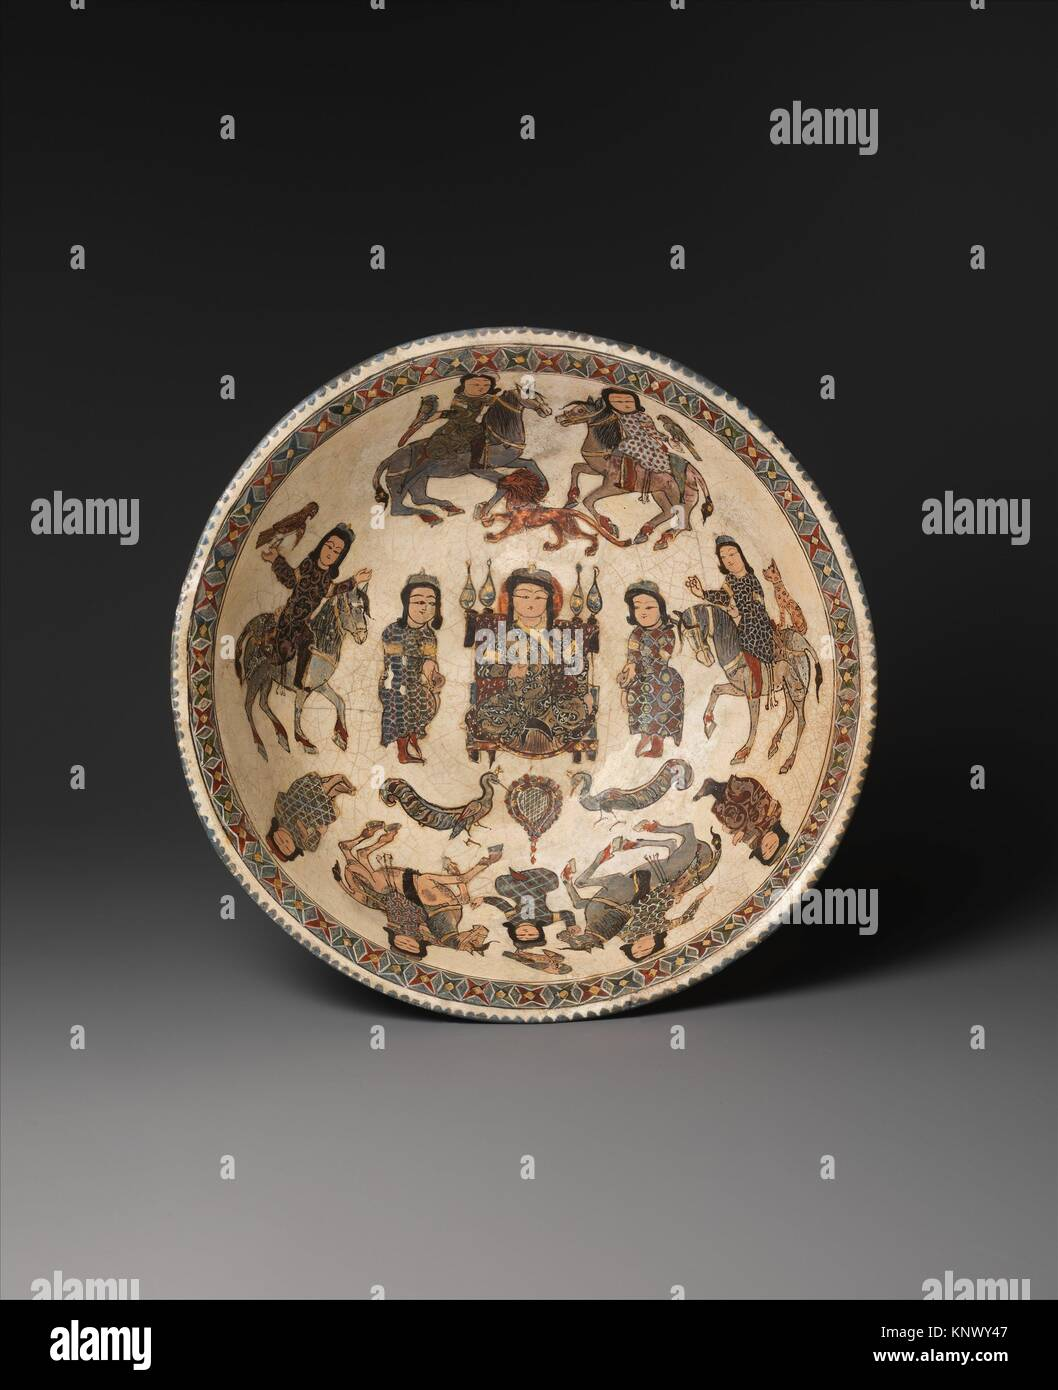 Bowl with Enthroned Figure and Horsemen. Object Name: Bowl; Date: late 12th-early 13th century; Geography: Country Stock Photo